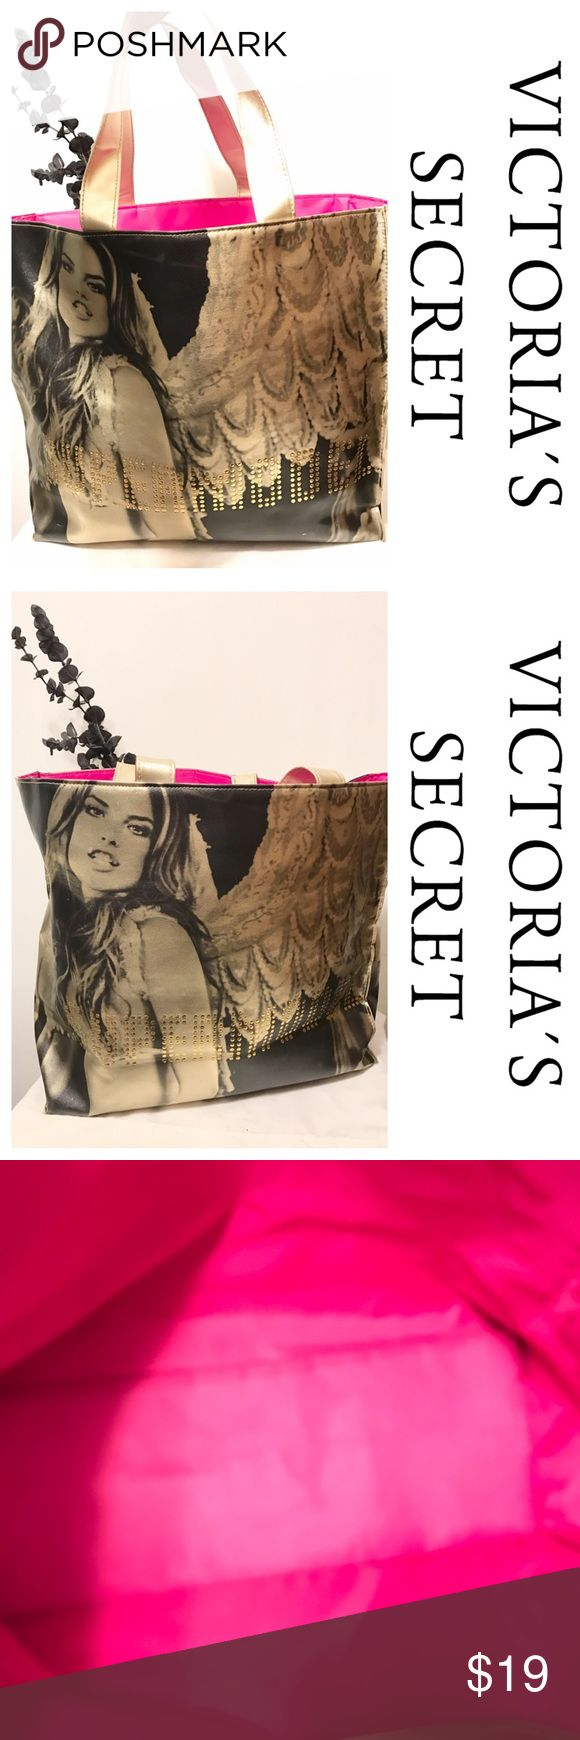 Victoria's Secret Tote Large vinyl Victoria's Secret Tote with Victoria's Secret model with wings.  Supermodel spelled out in gold accent.  Pink cloth interior.  Tote has a manufacturing flaw on one side and slight wear in bottom.  Interior has a couple small stains but camera can not pick them up. Victoria's Secret Bags Totes